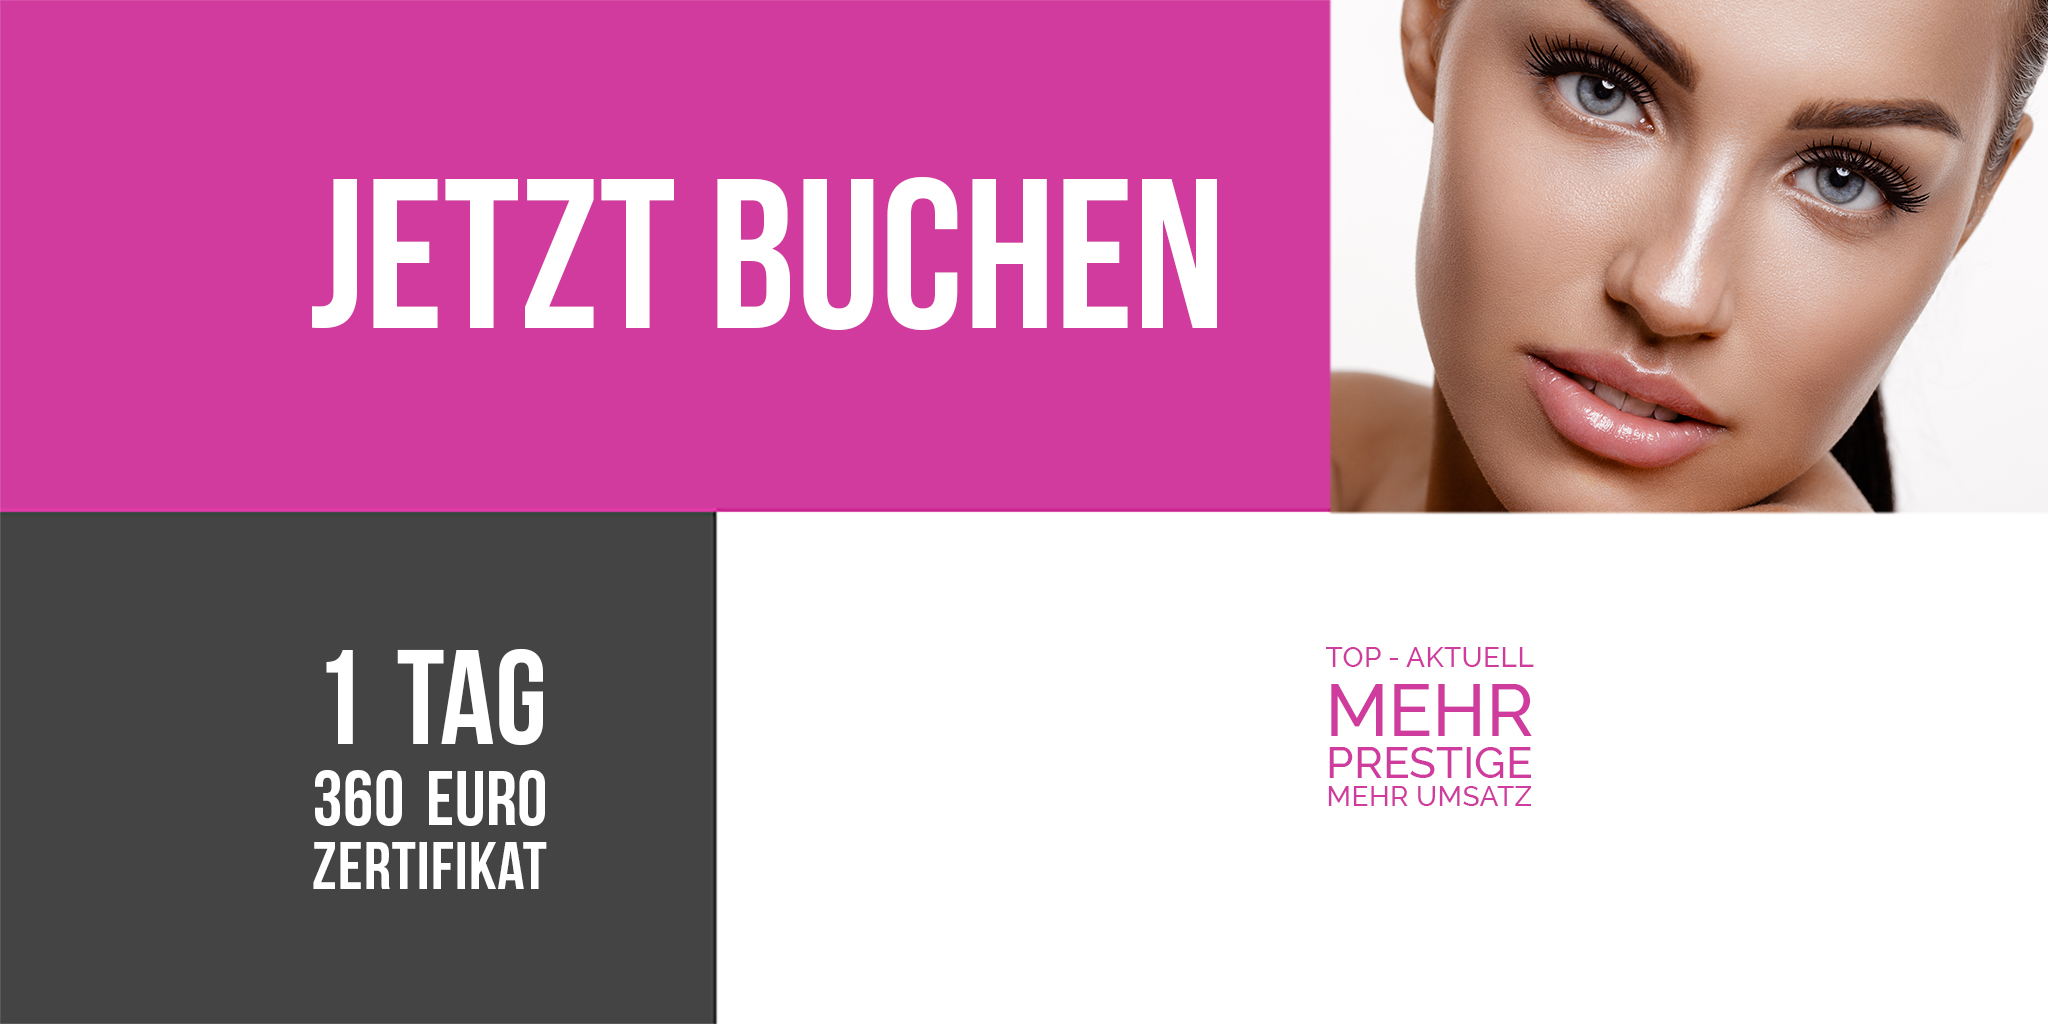 Perfect Face Ausbildung Berlin